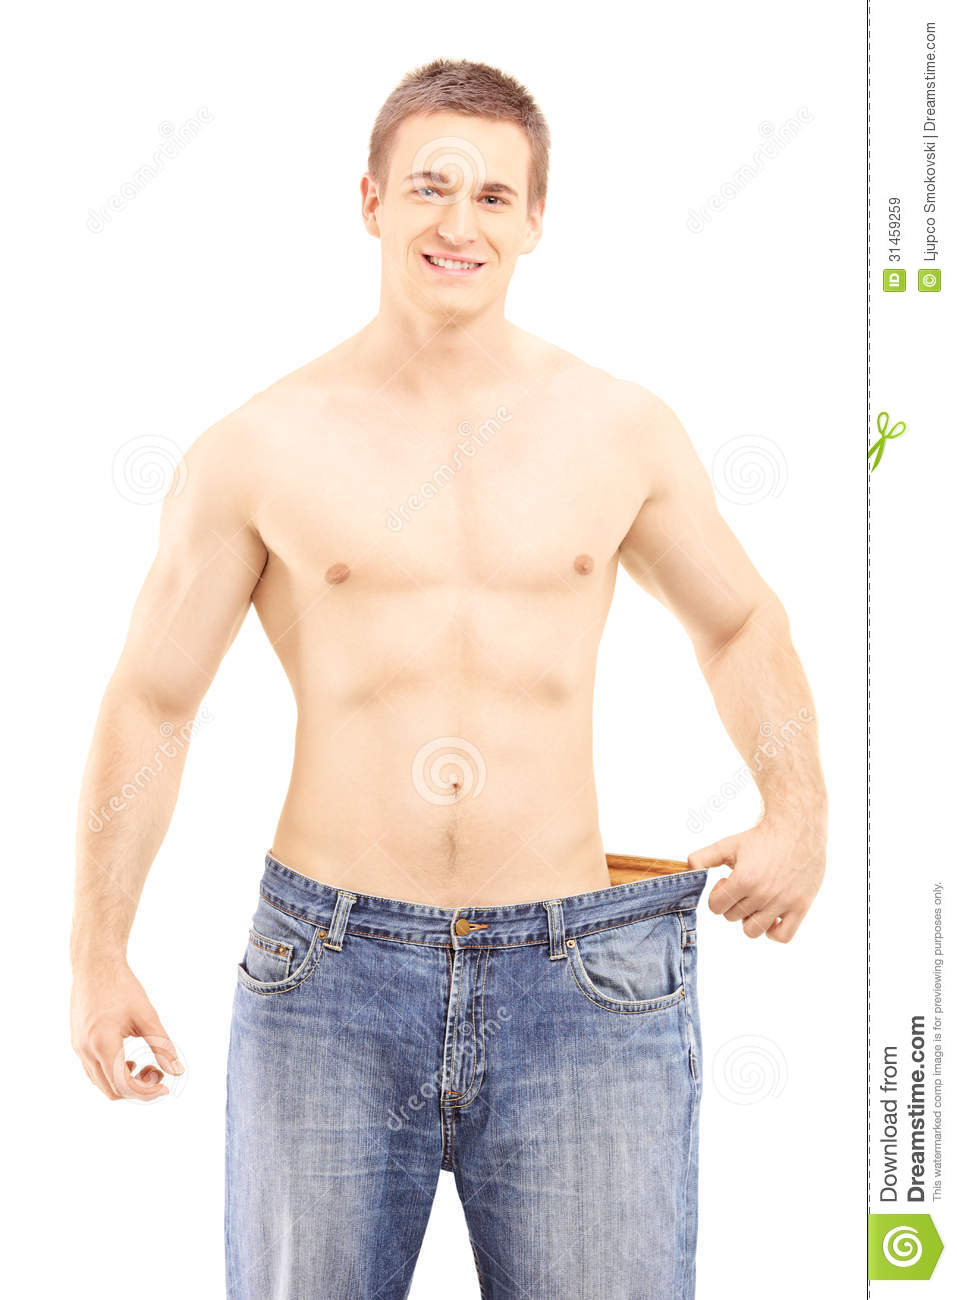 Shirtless Smiling Male Showing His Lost Weight By Putting ...